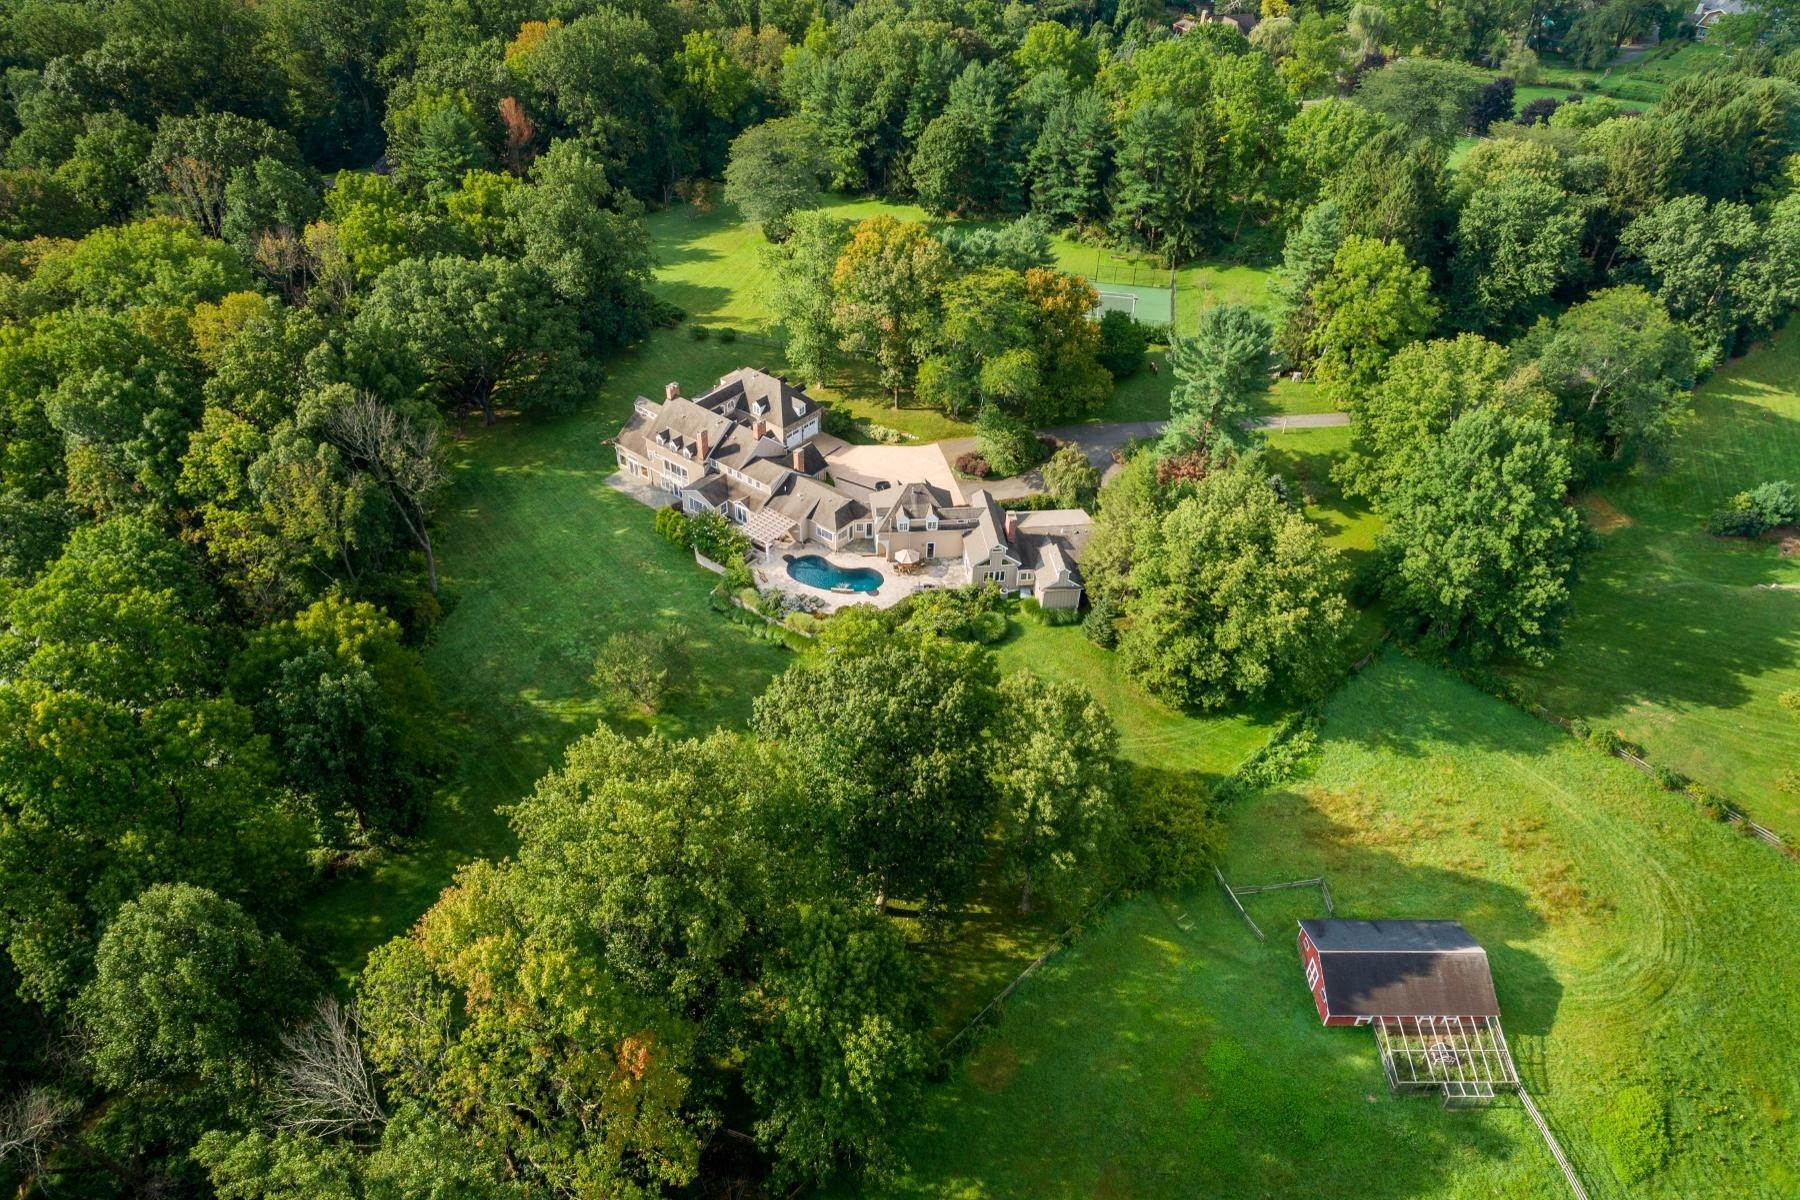 Single Family Homes for Sale at Country Compound Atop Bernardsville Mountain 329 & 331 Mendham Road Bernardsville, New Jersey 07924 United States